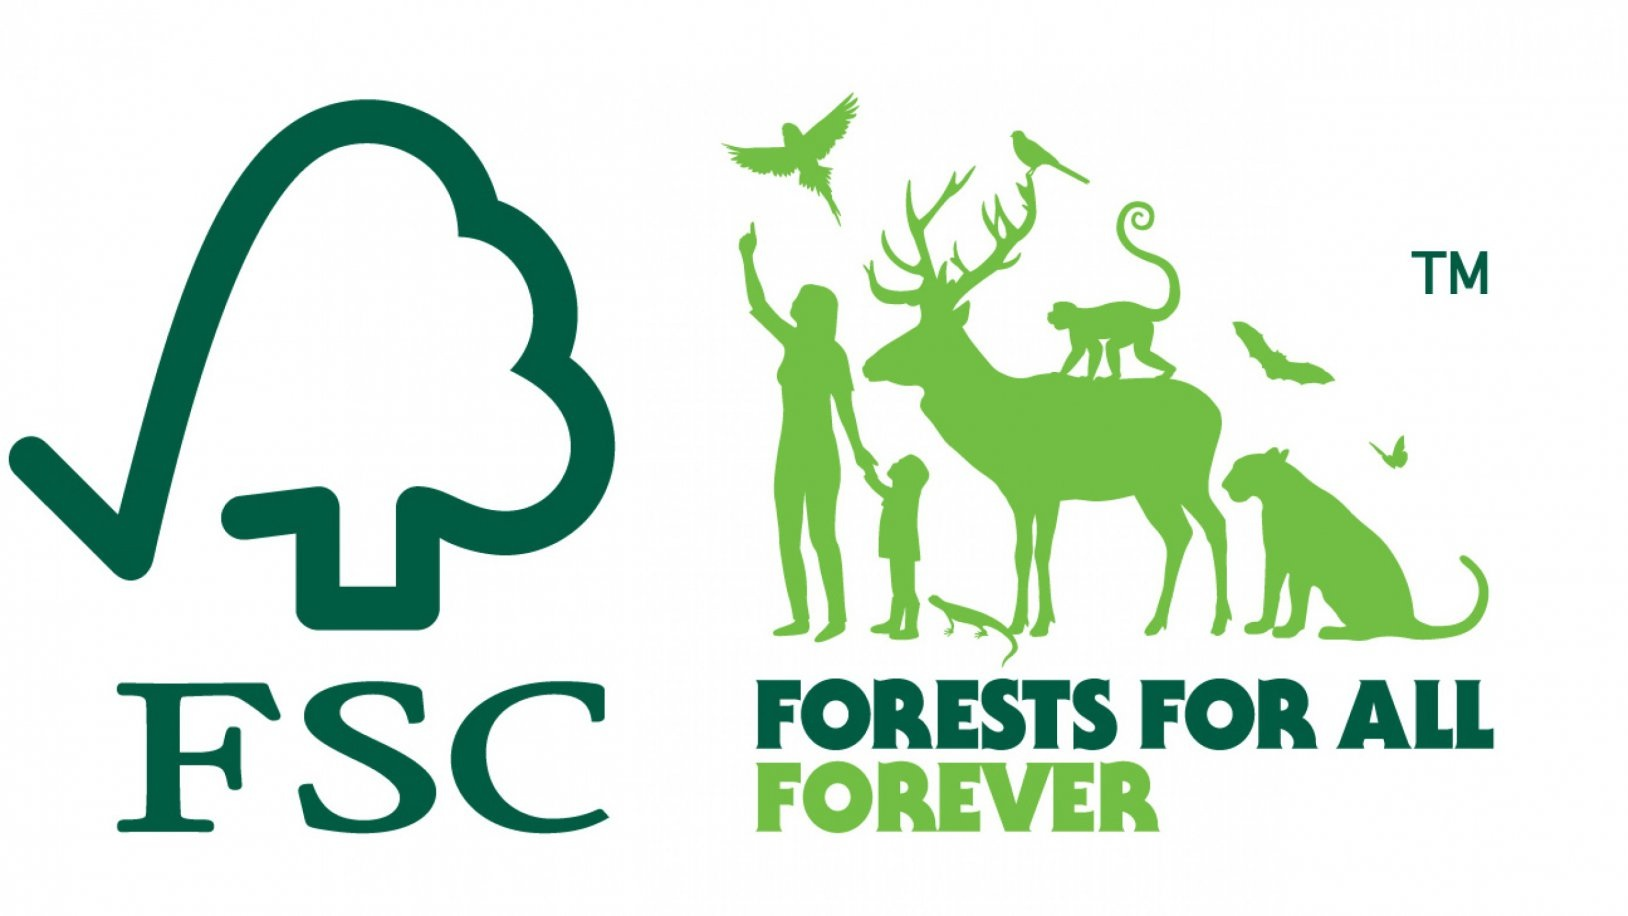 Forests For All - our notebooks are certified eco-friendly by the Forest Stewardship Council (FSC).